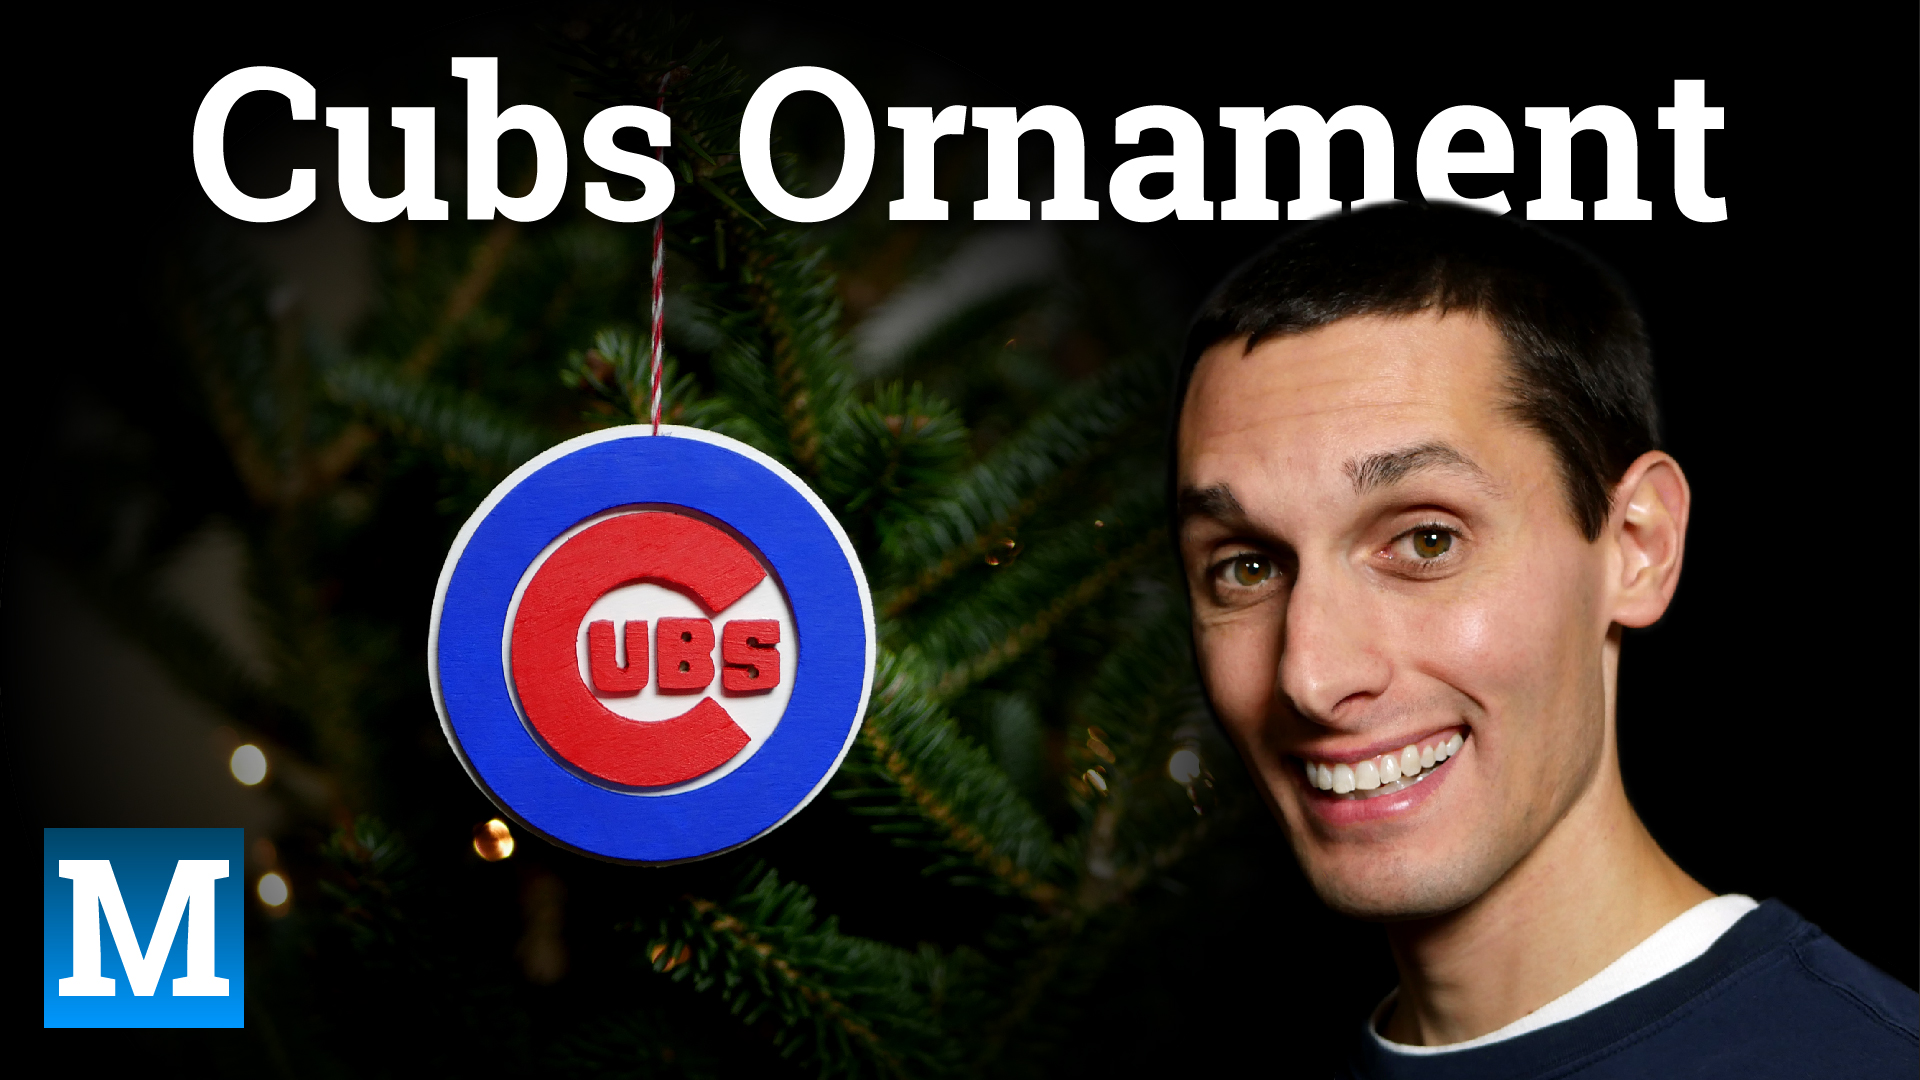 Cubs Ornament